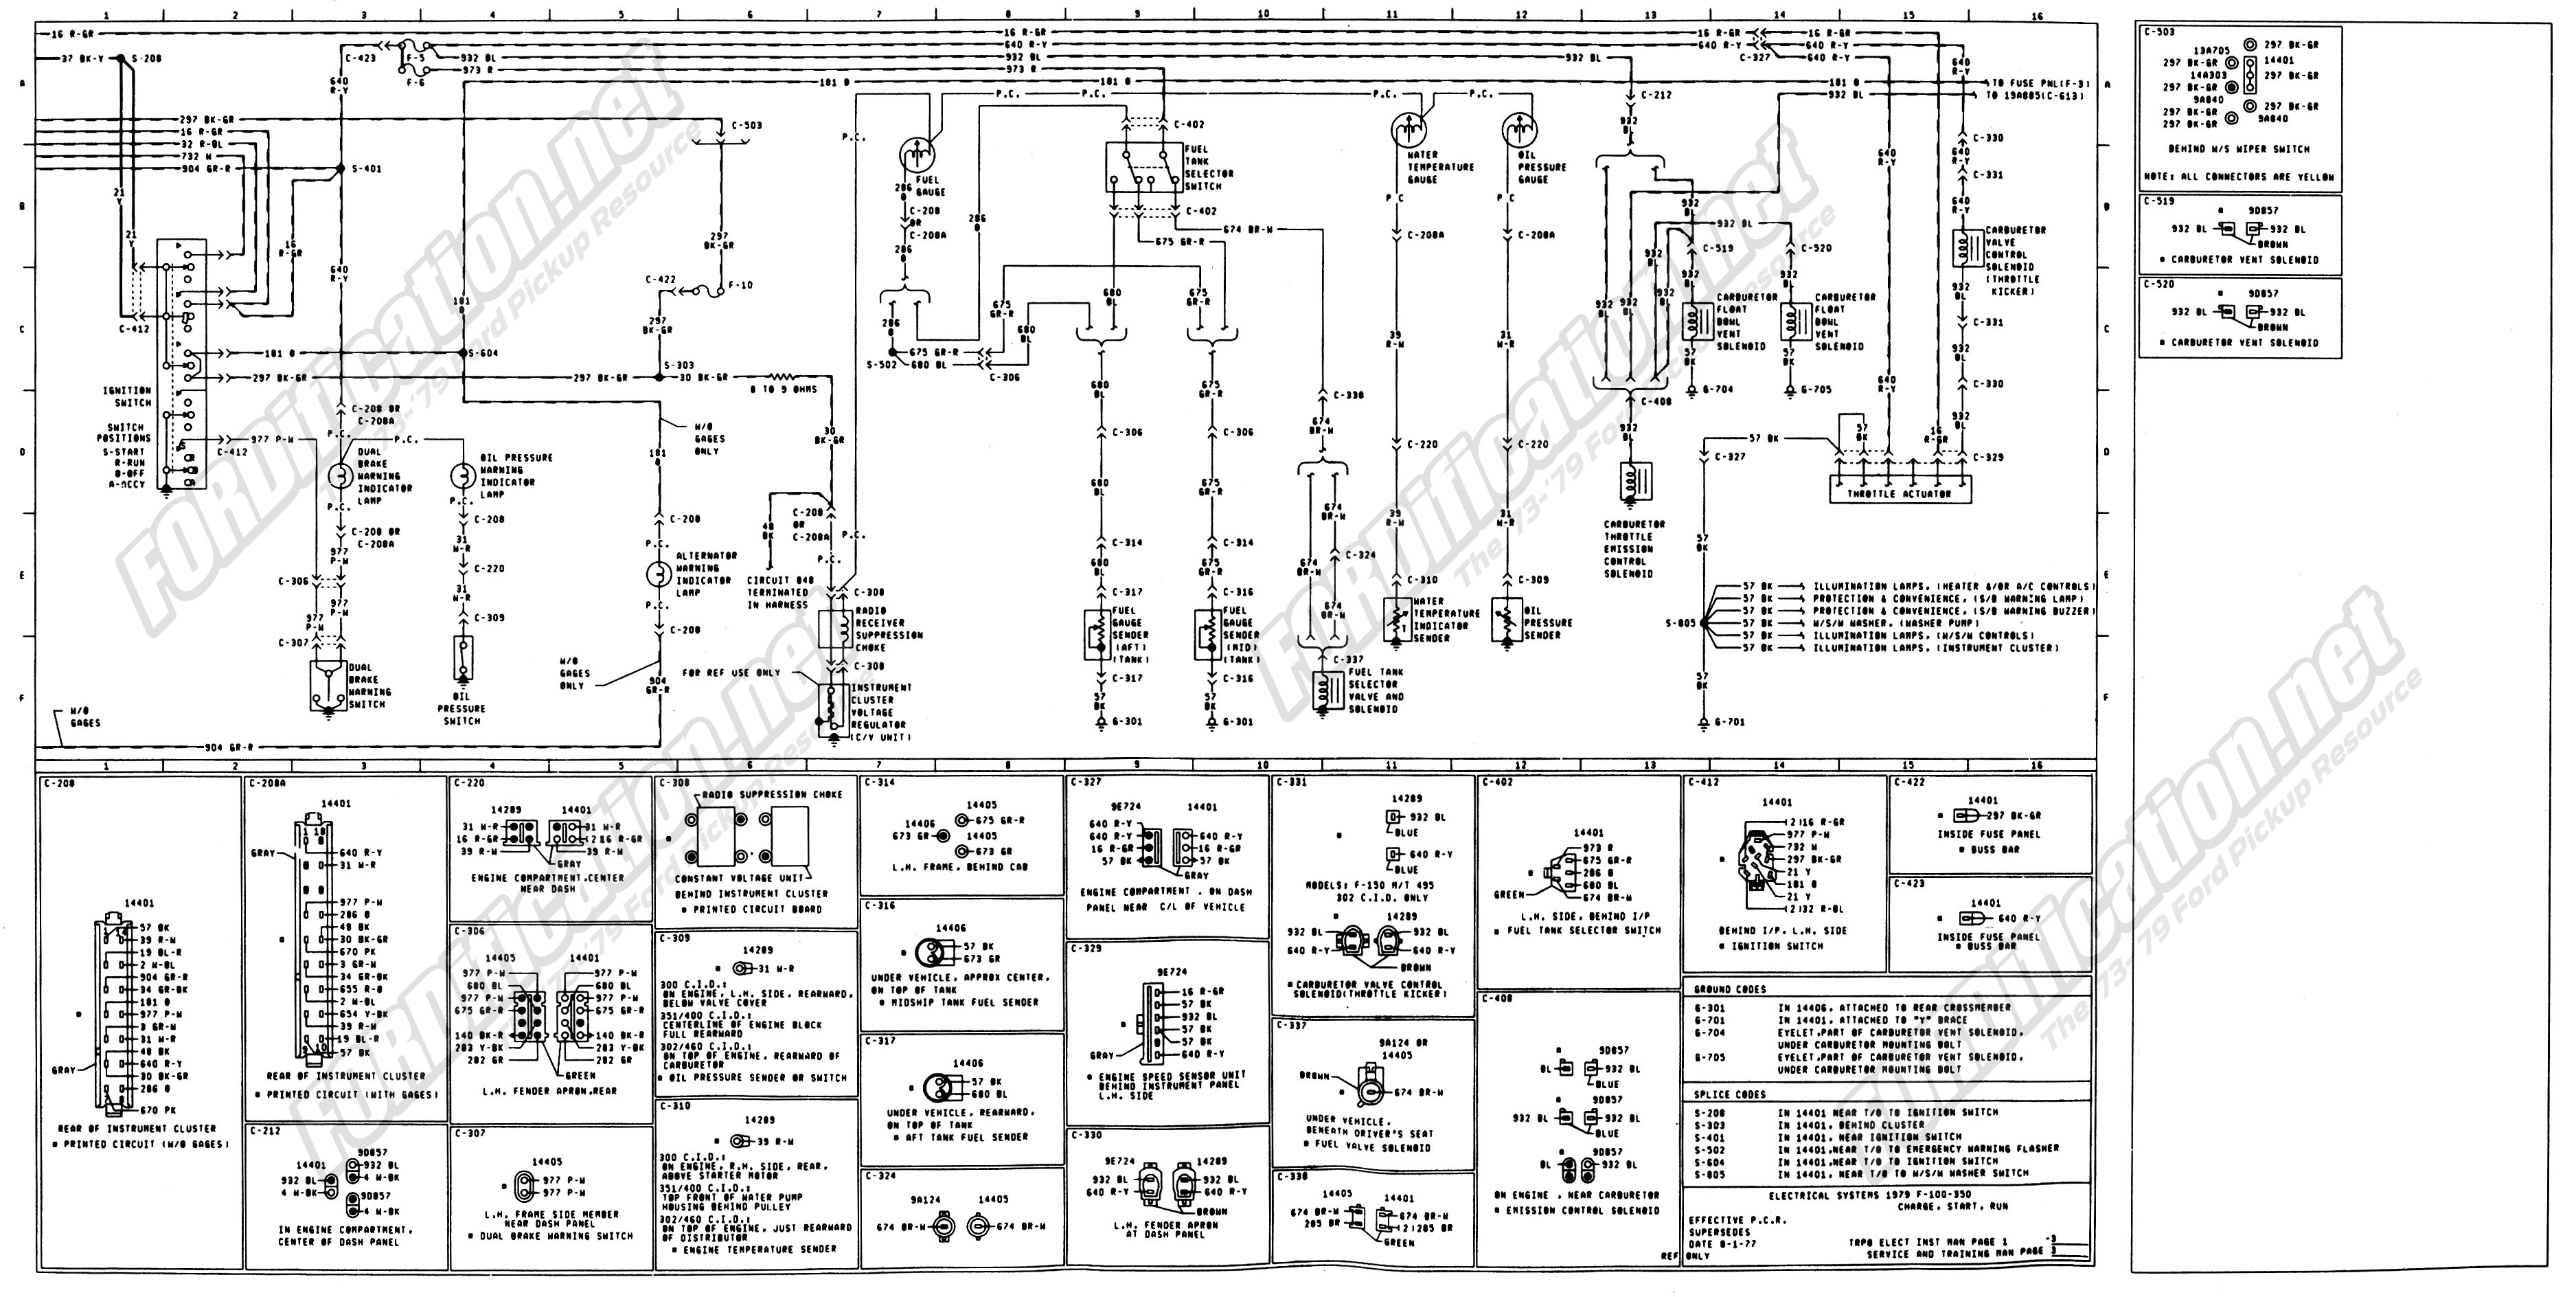 F Fuel Wiring Diagram on 1979 malibu wiring diagram, 1979 silverado wiring diagram, 1979 f700 wiring diagram, 1979 bronco wiring diagram, 1979 blazer wiring diagram, 1979 f150 wiring diagram, 1979 suburban wiring diagram, 1979 corolla wiring diagram, 1979 f100 wiring diagram, 1979 f250 wiring diagram, 1979 lincoln wiring diagram, 1979 dodge wiring diagram, 1979 mustang wiring diagram,